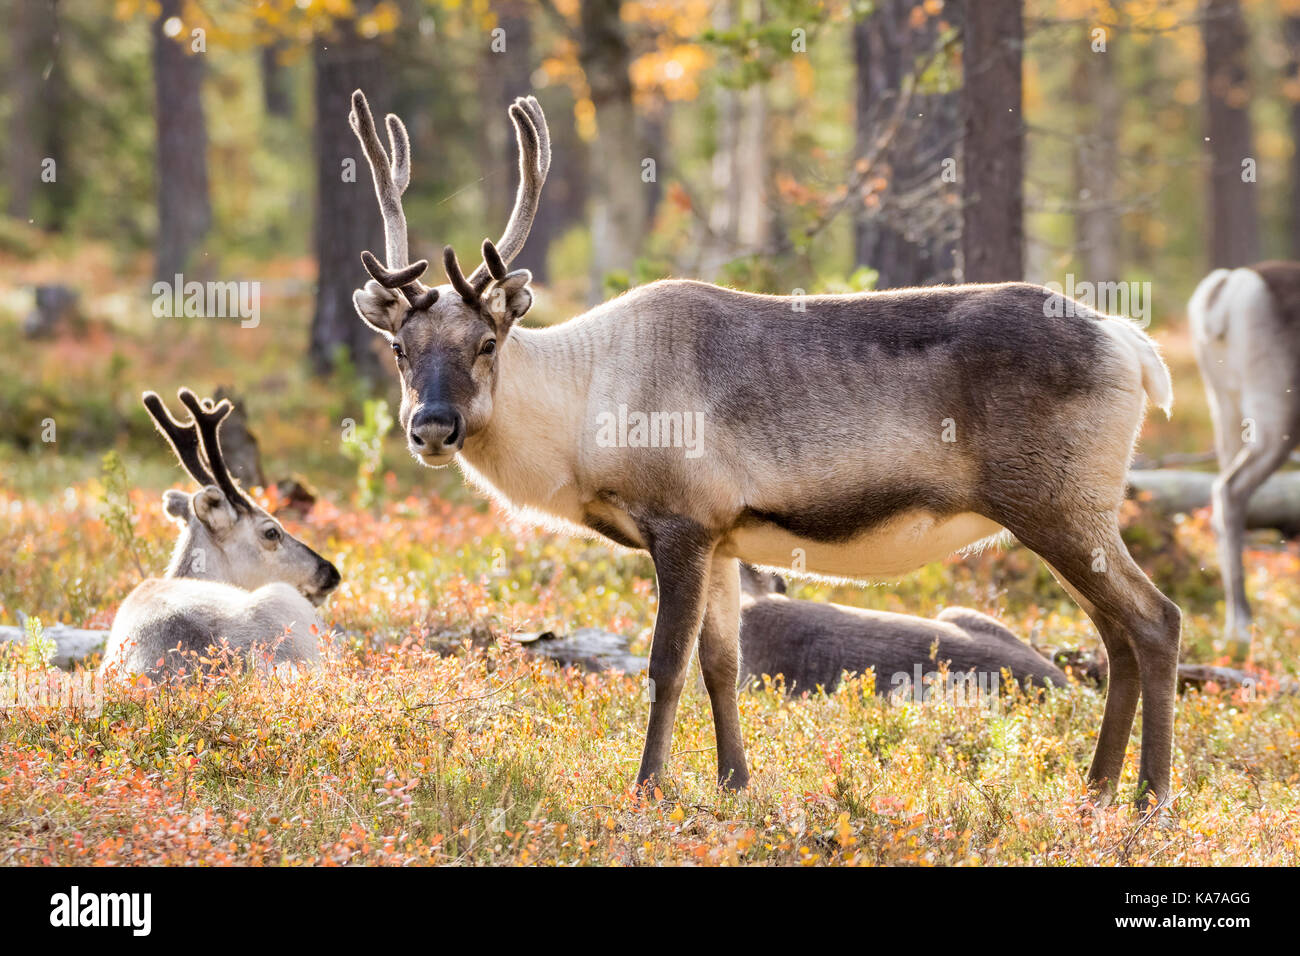 Reindeer in a pine forest - Stock Image